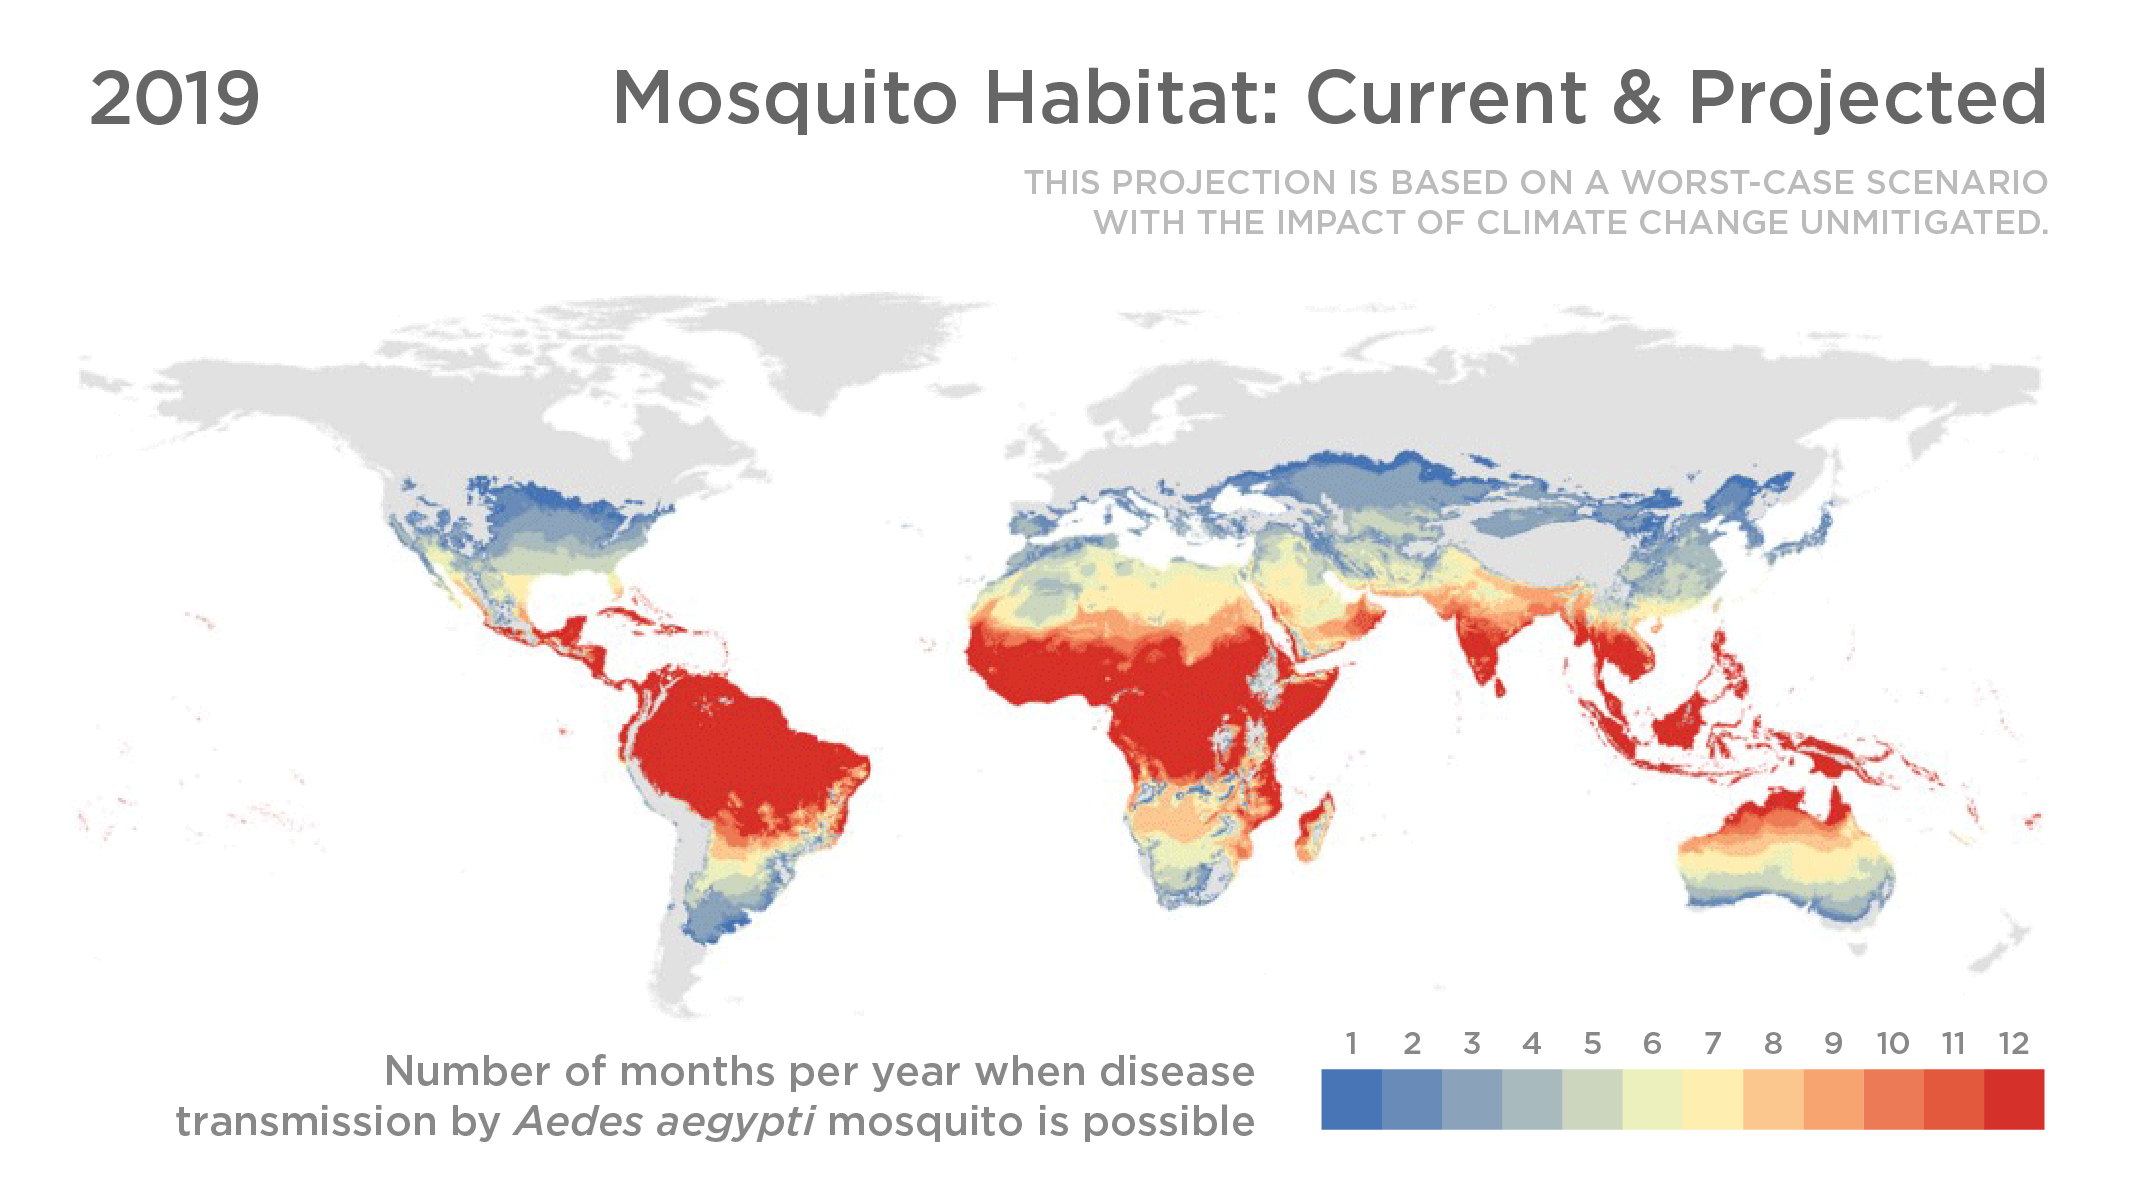 World map showing current and projected habitats of the Aedes aegypti mosquito.